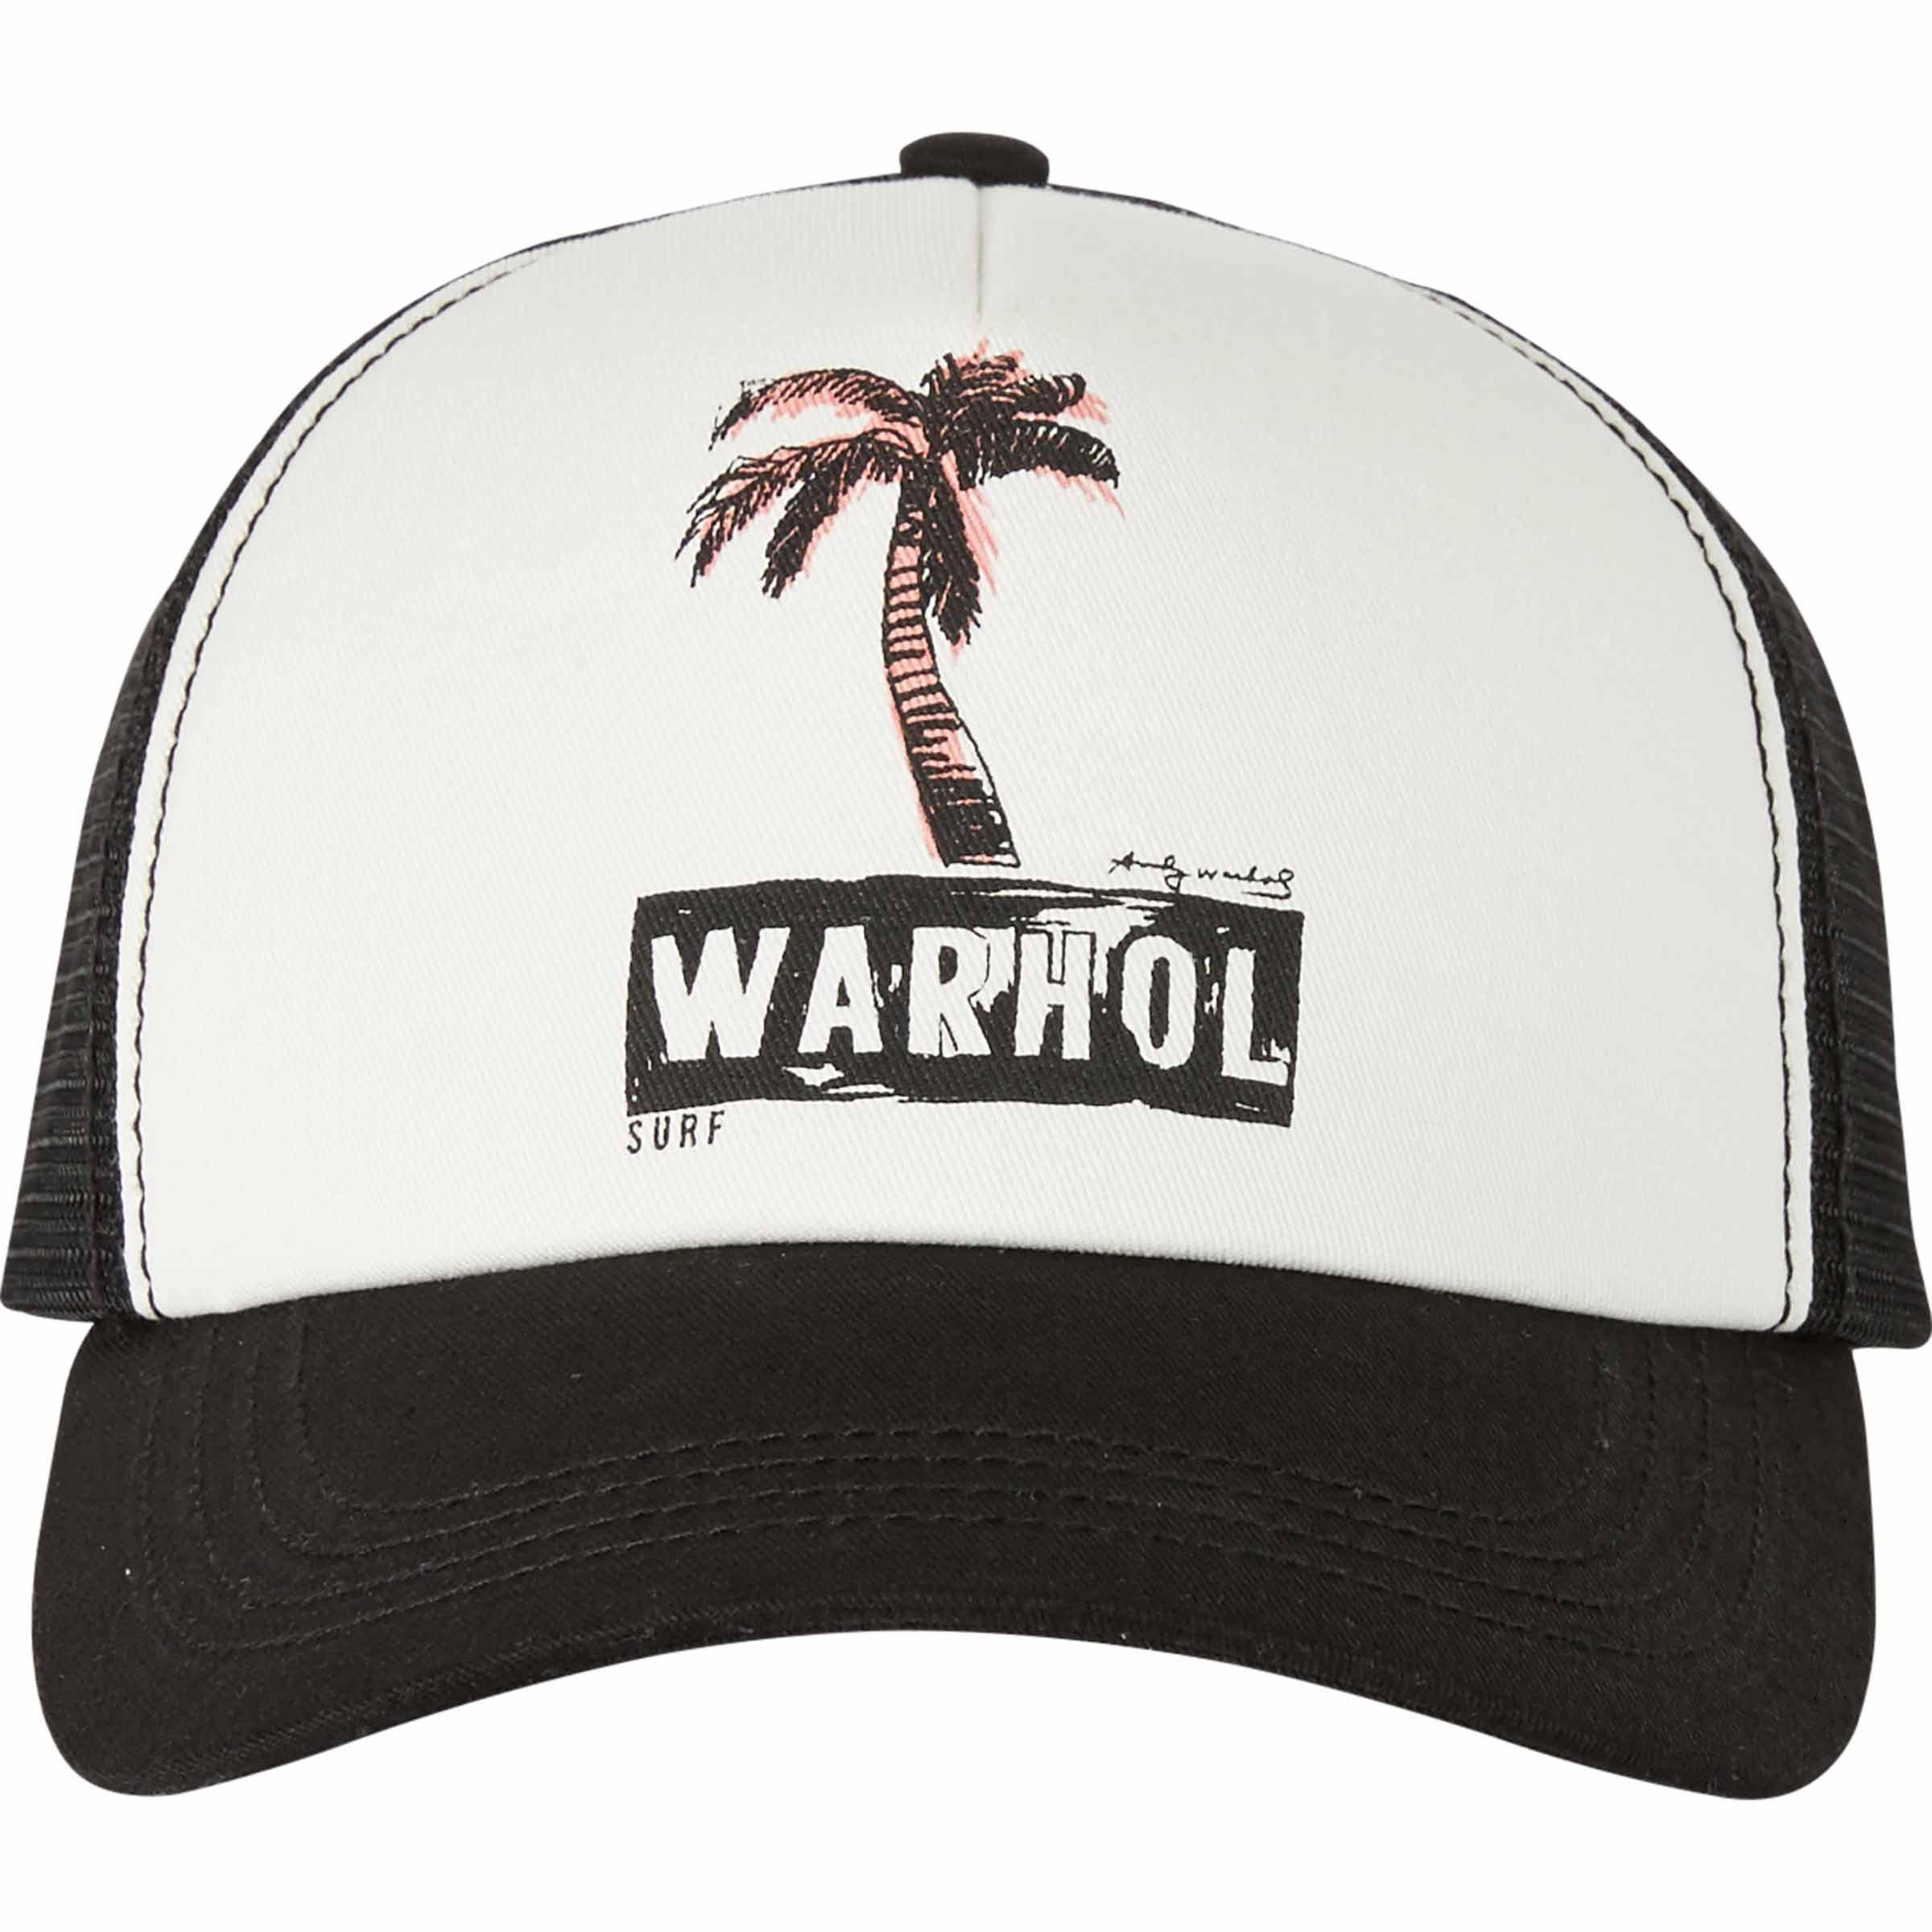 ce5a86be239aed Lyst - Billabong Warholsurf Holly Trucker Hat in Black